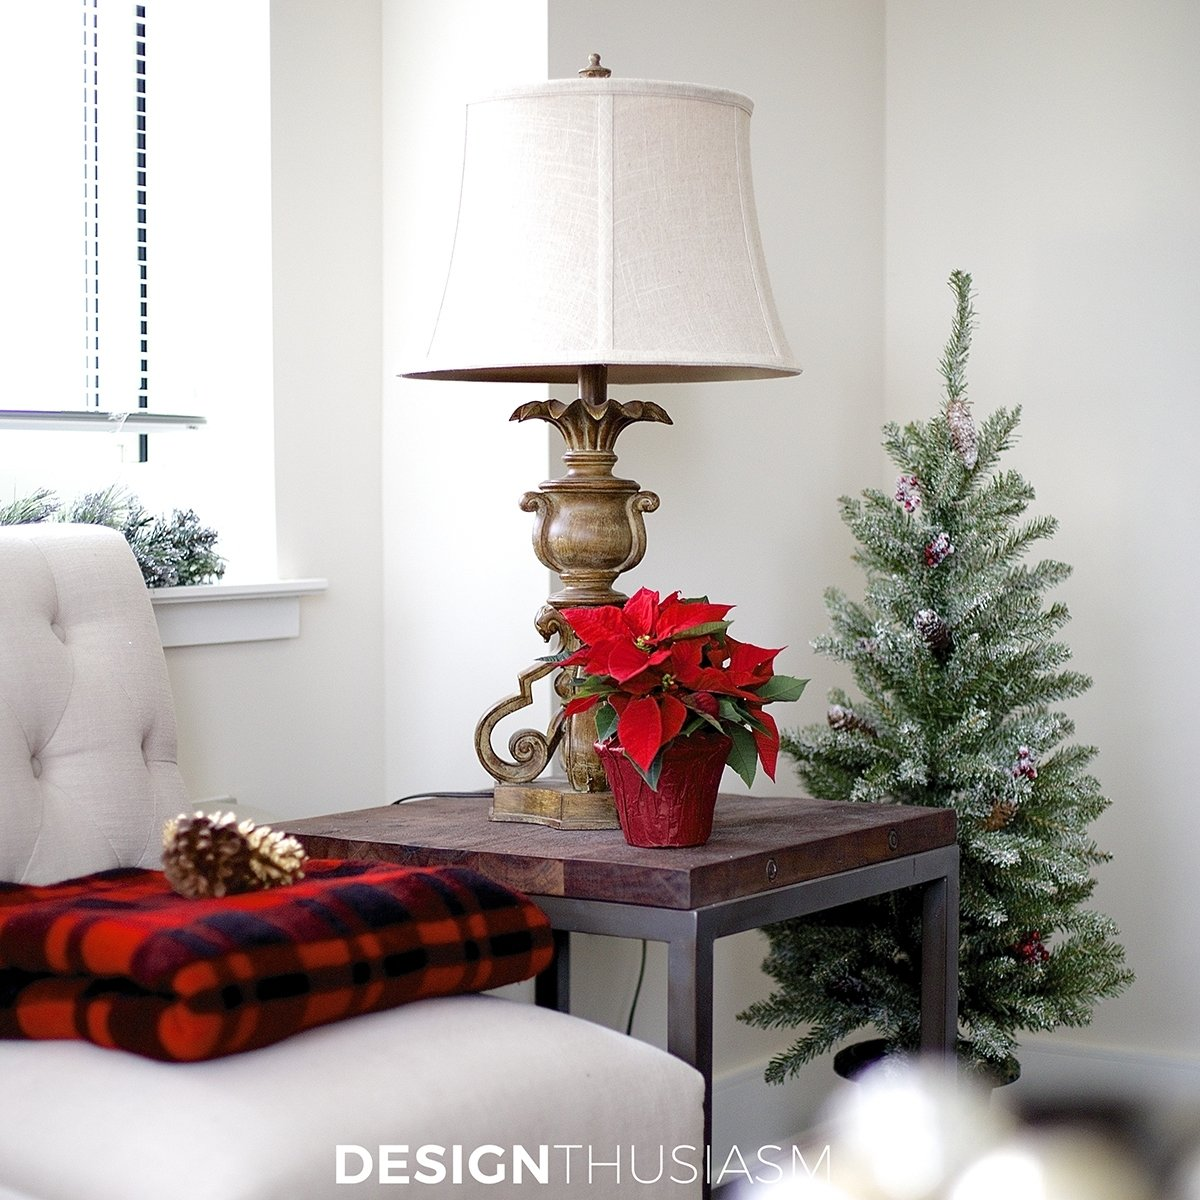 10 Lovely Christmas Decoration Ideas For Apartments easy holiday decorating ideas for a small apartment 2020